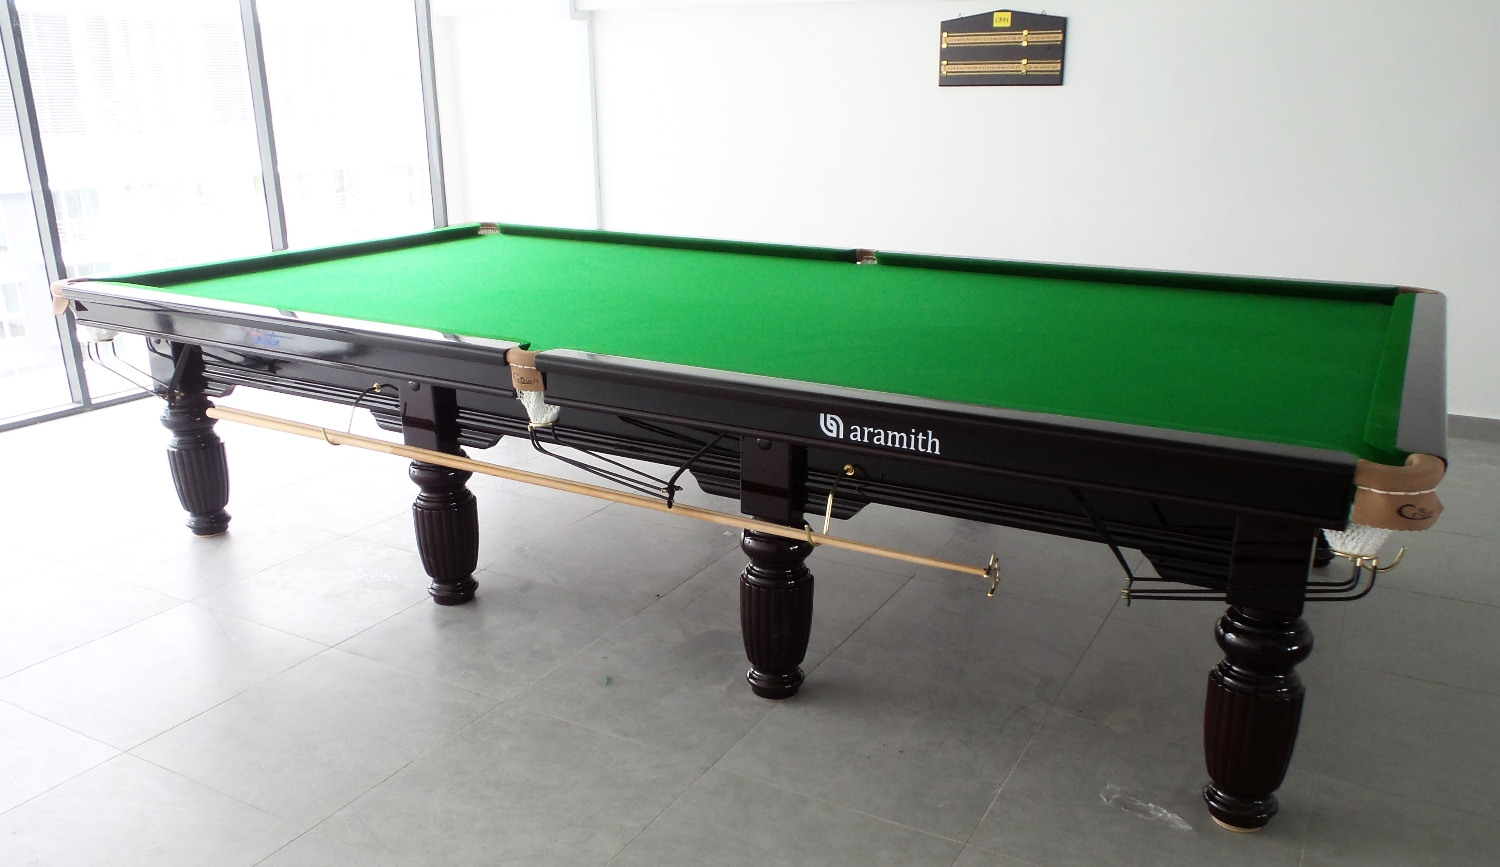 ... Crown Snooker At Flexis One South 3 ...